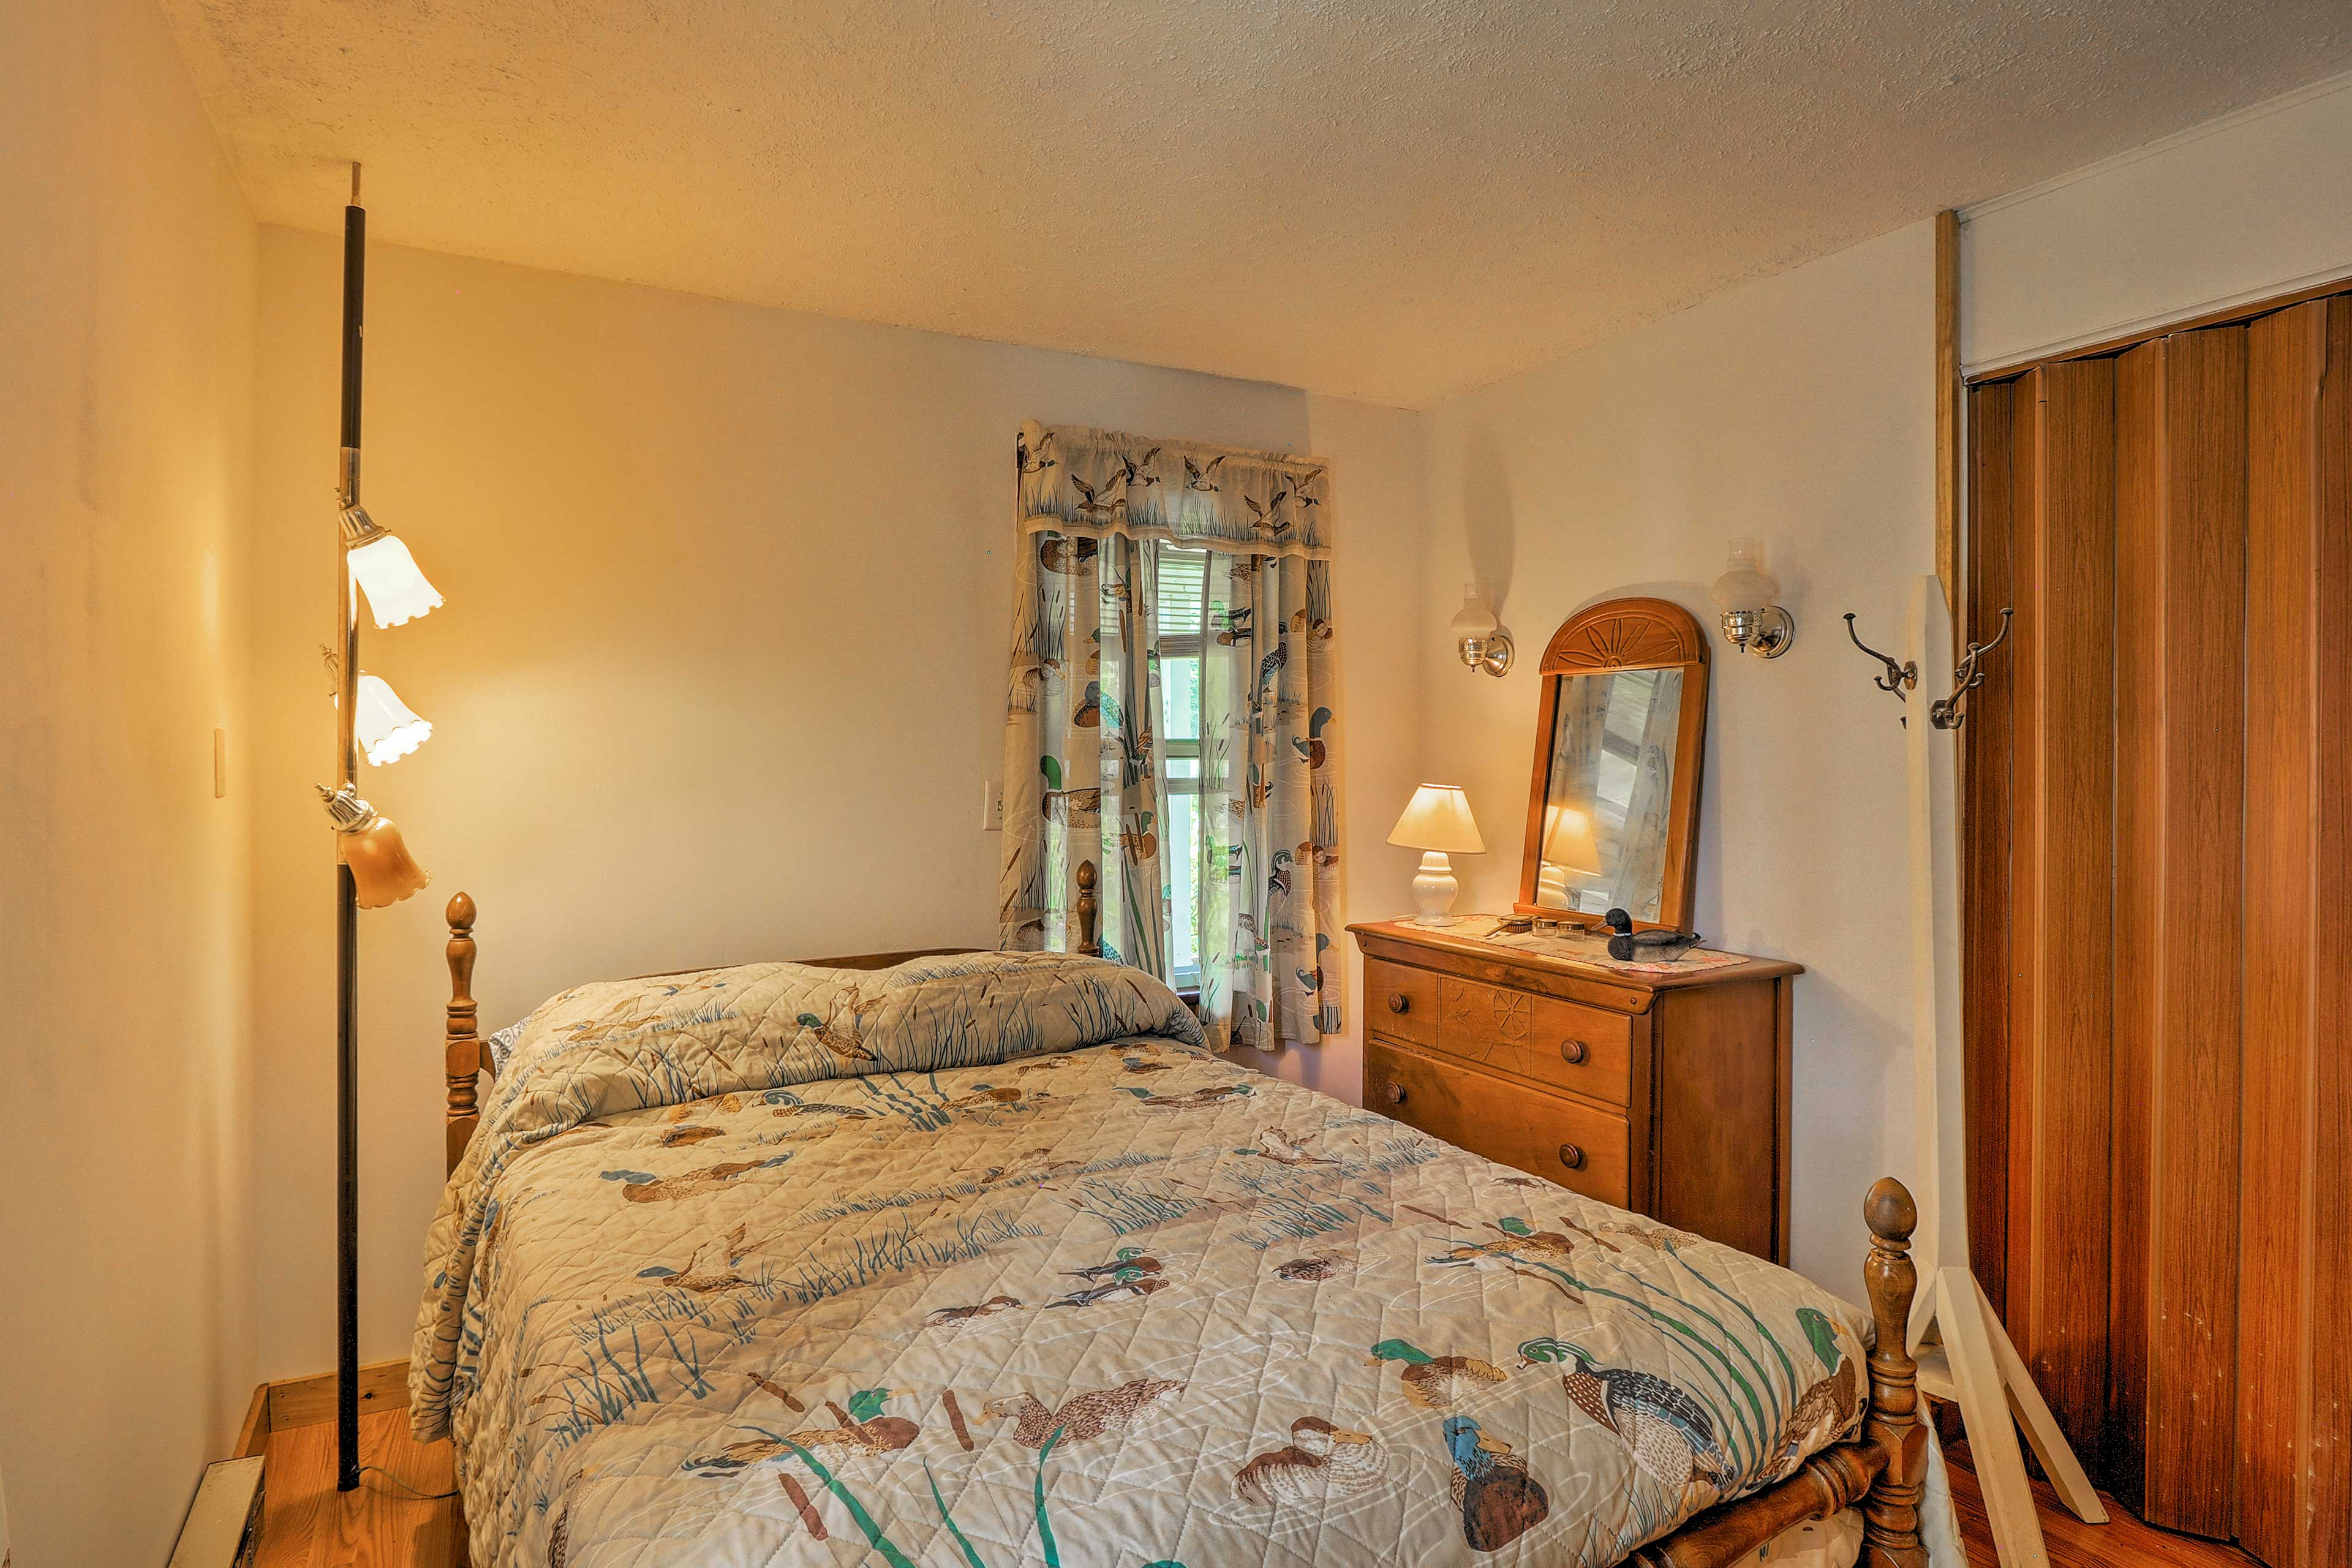 The property sleeps 8 in 2 bedrooms, the windowed porch and living room.